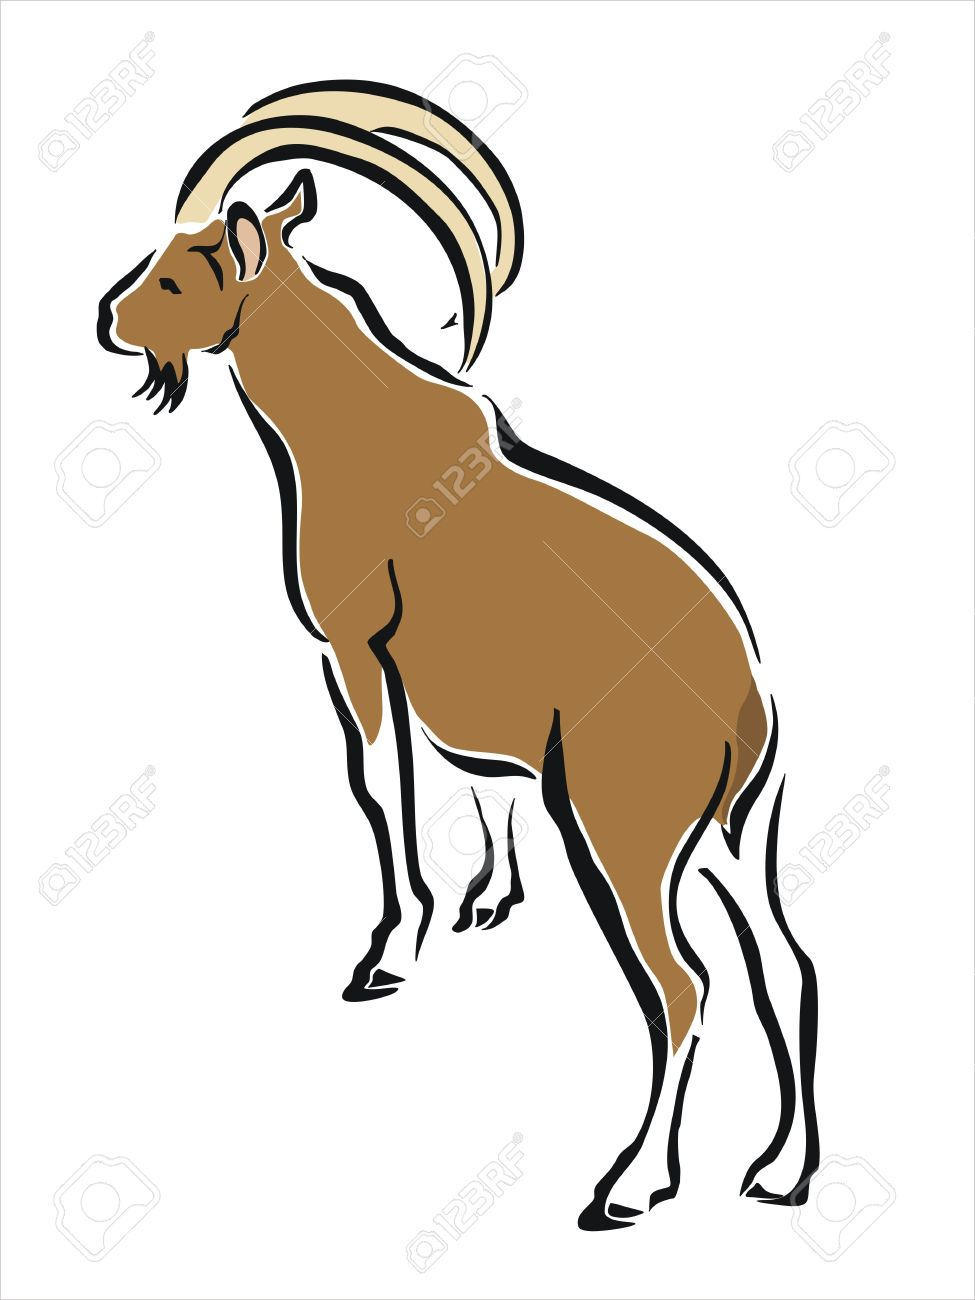 Mountain Goat clipart #3, Download drawings